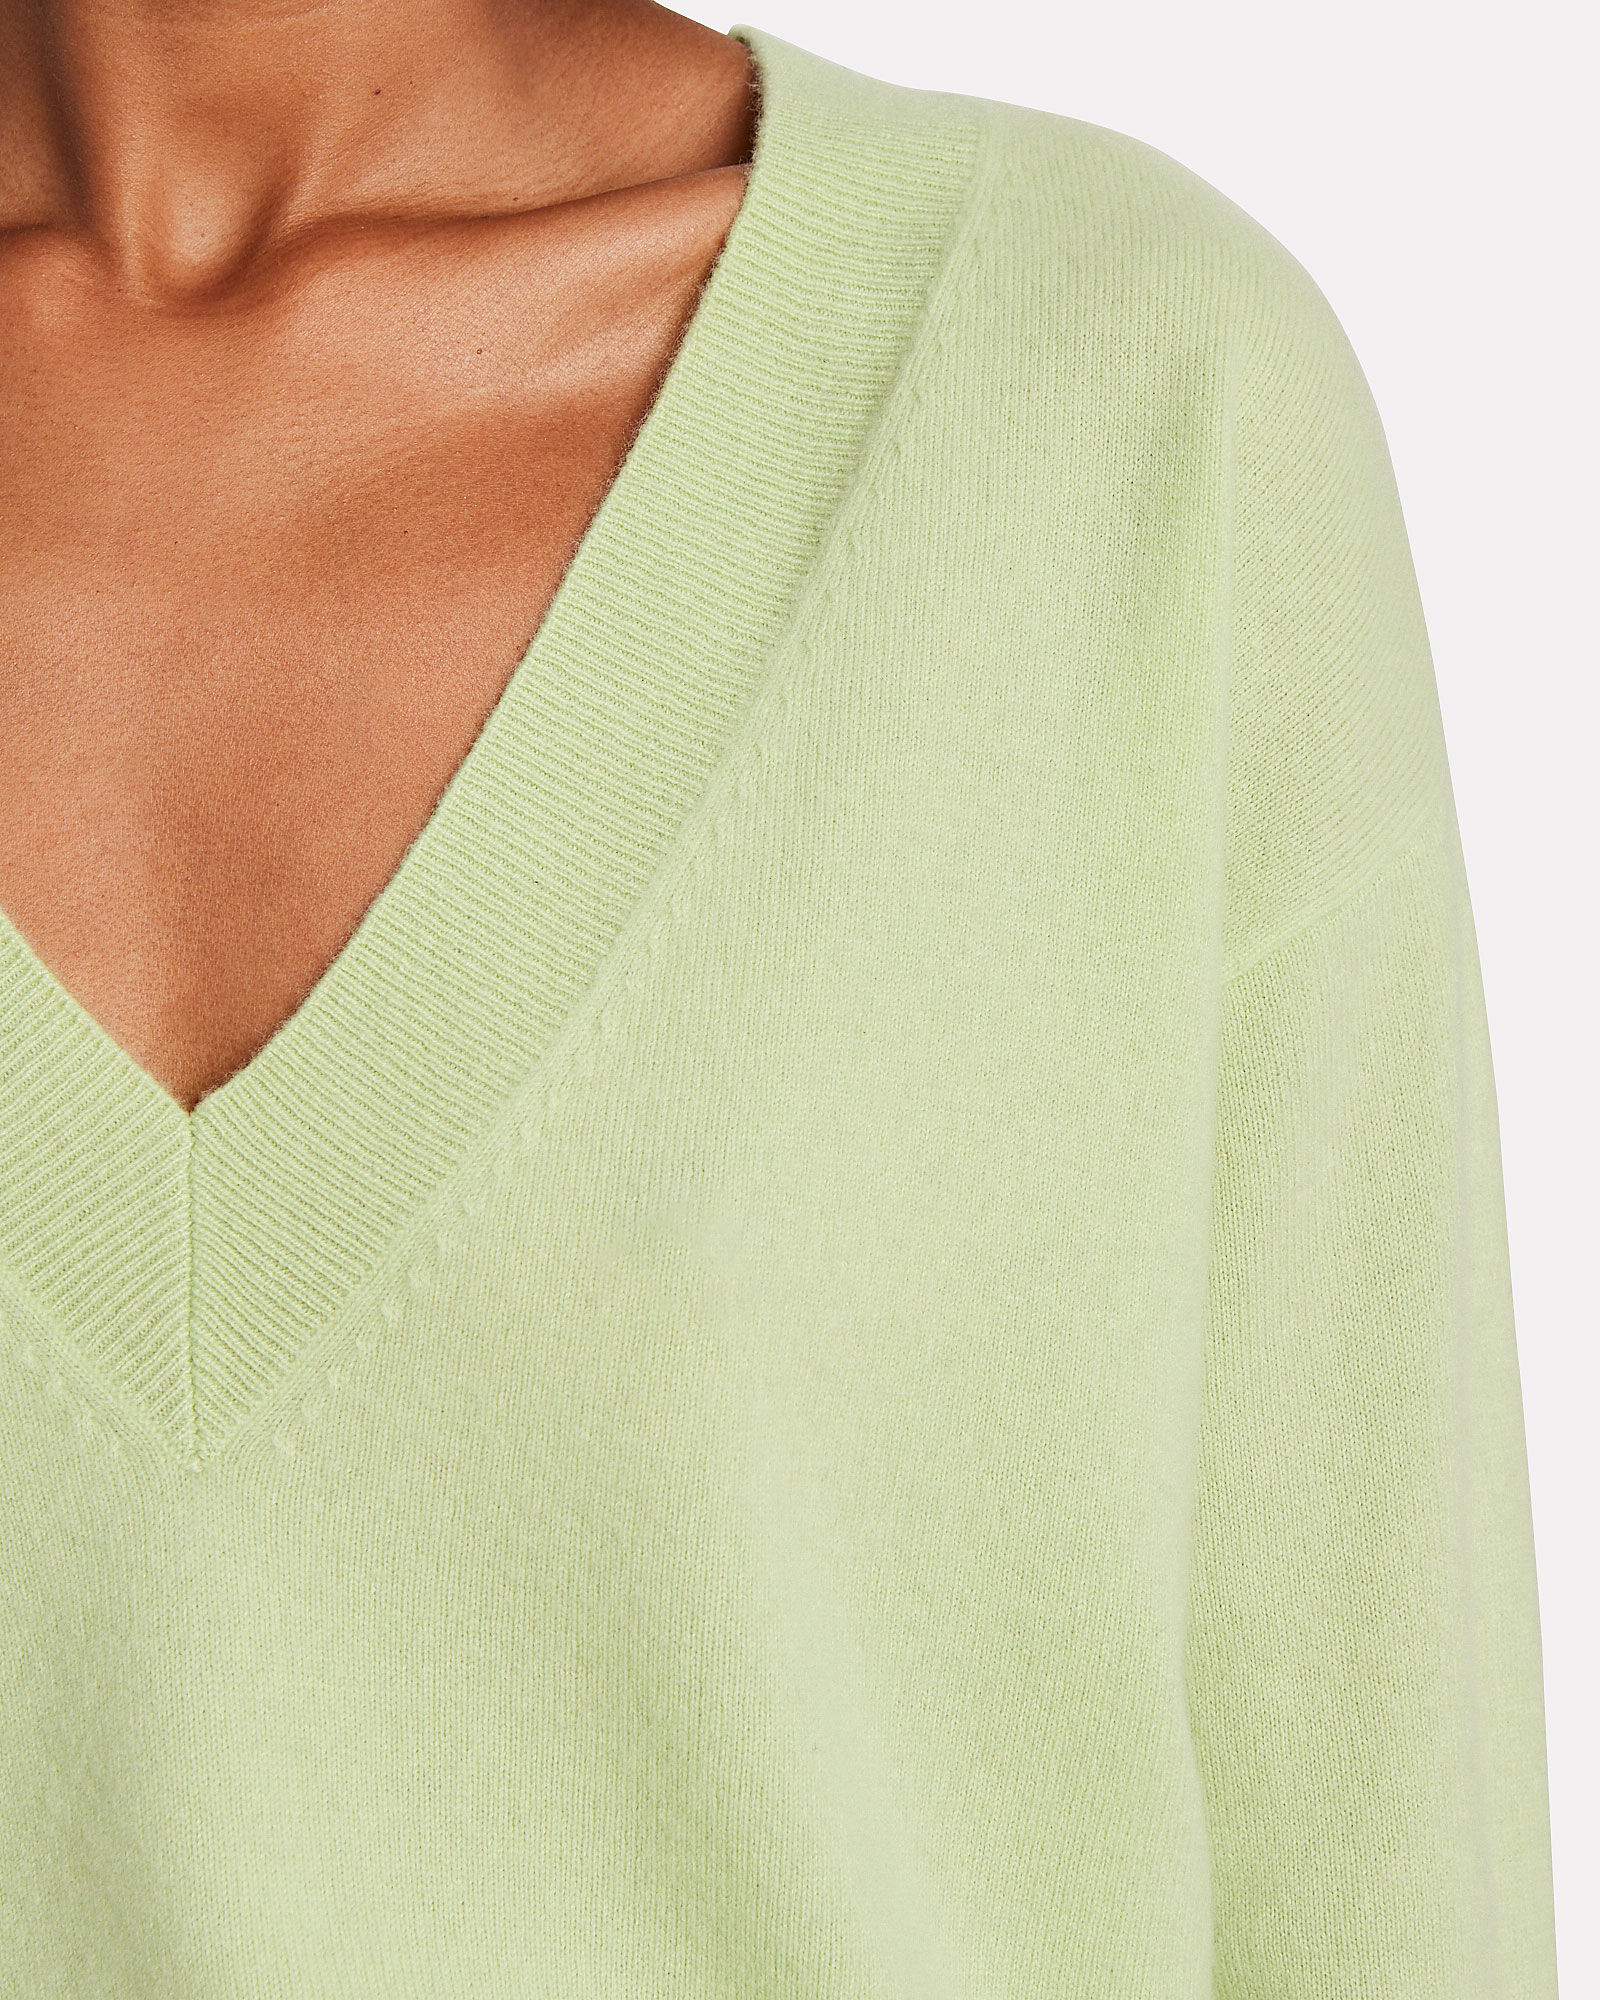 Elroy V-Neck Cashmere Sweater, MINT, hi-res